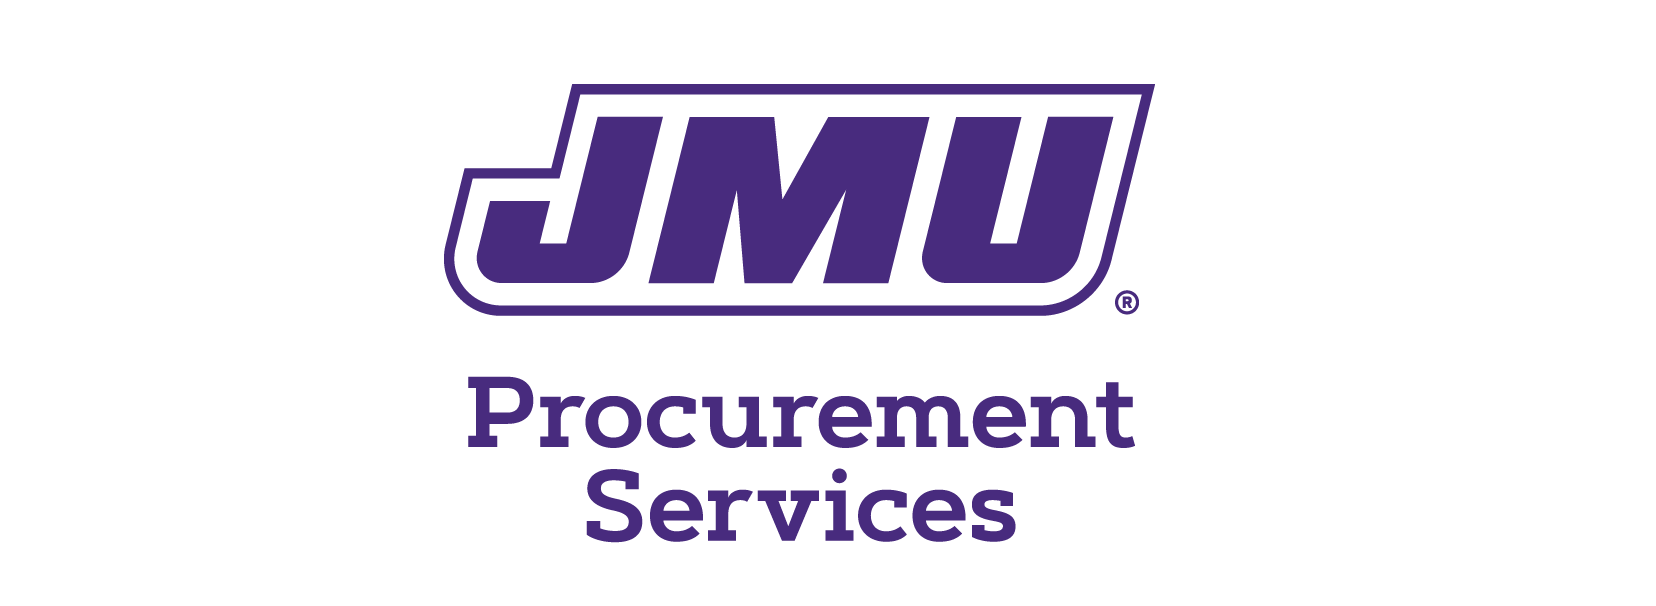 JMU-Procurement Services-vert-purple